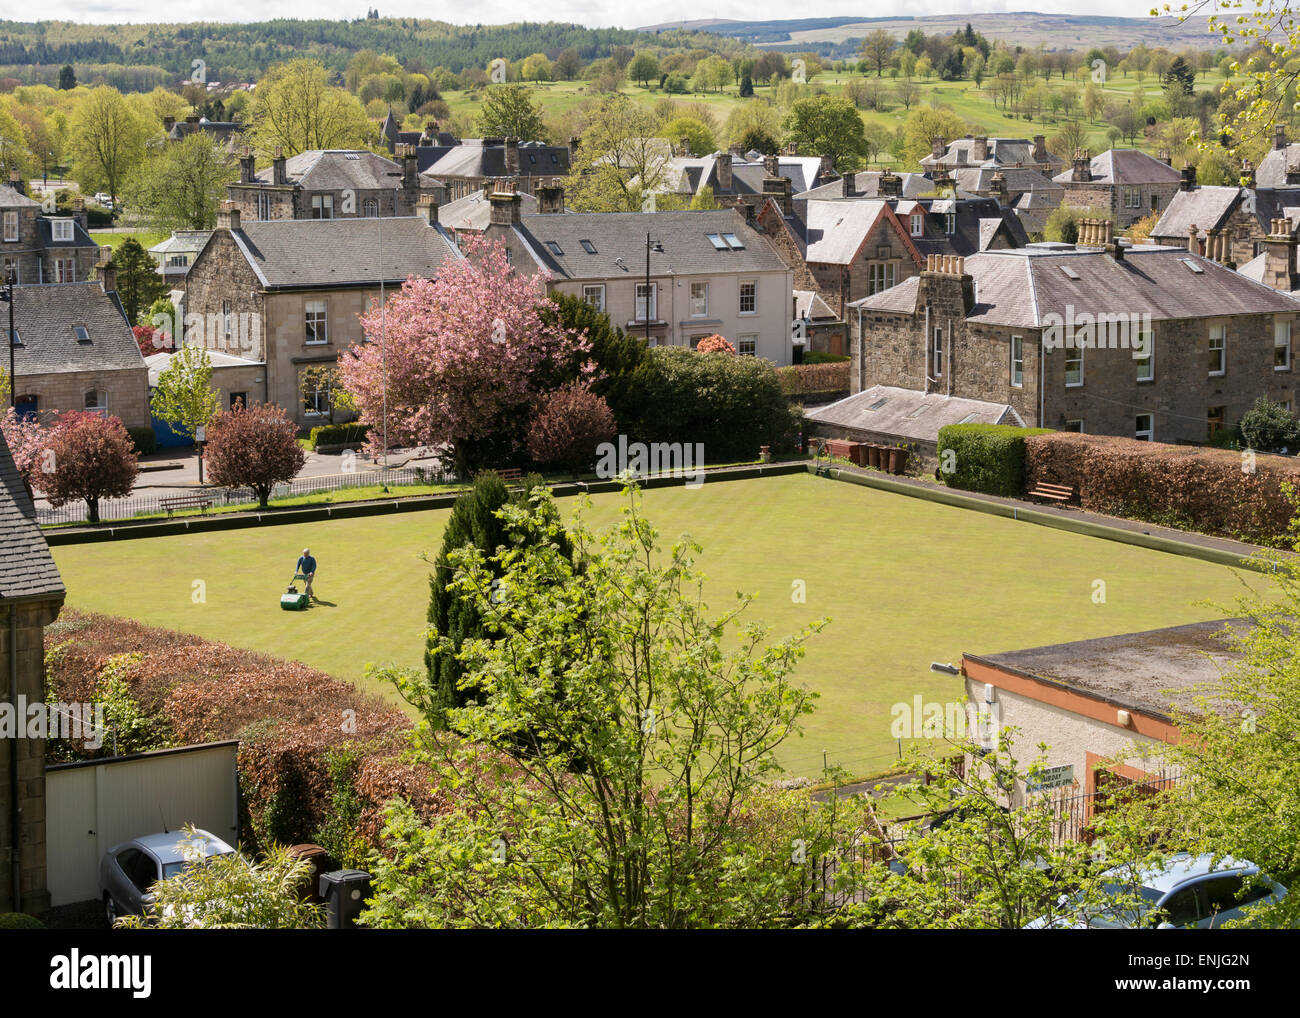 Spring in the city of Stirling - mowing the bowling green - Stock Image